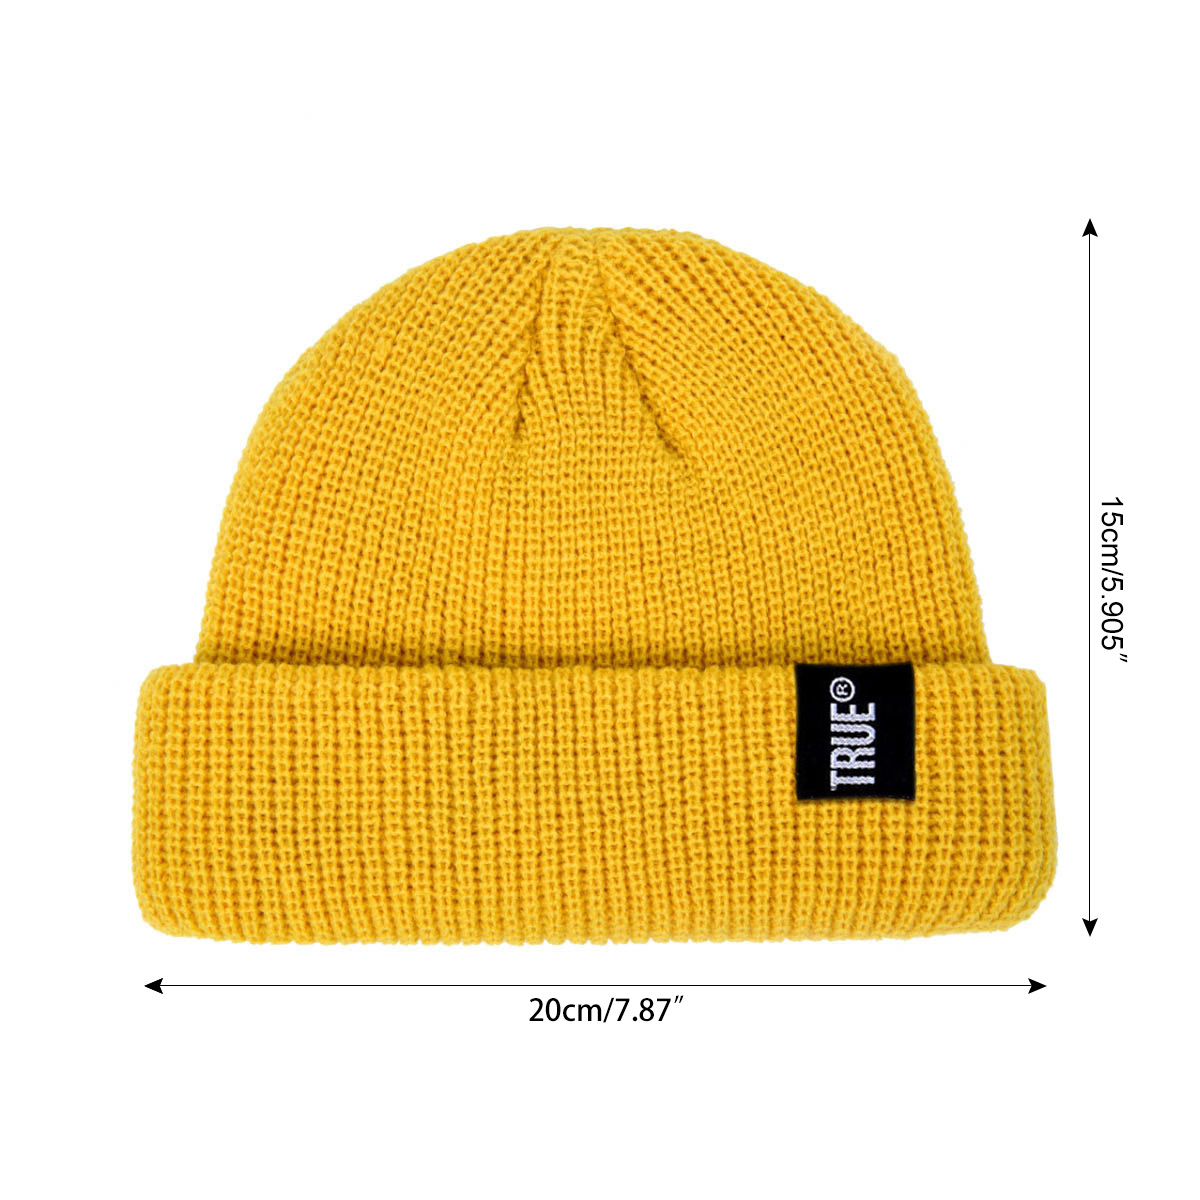 2021 Fashion Unisex Winter Hat Men Cuffed Cib Knit Hat Short Melon Ski Beanies Autumn Winter Solid Color Casual Beanie Hat 13